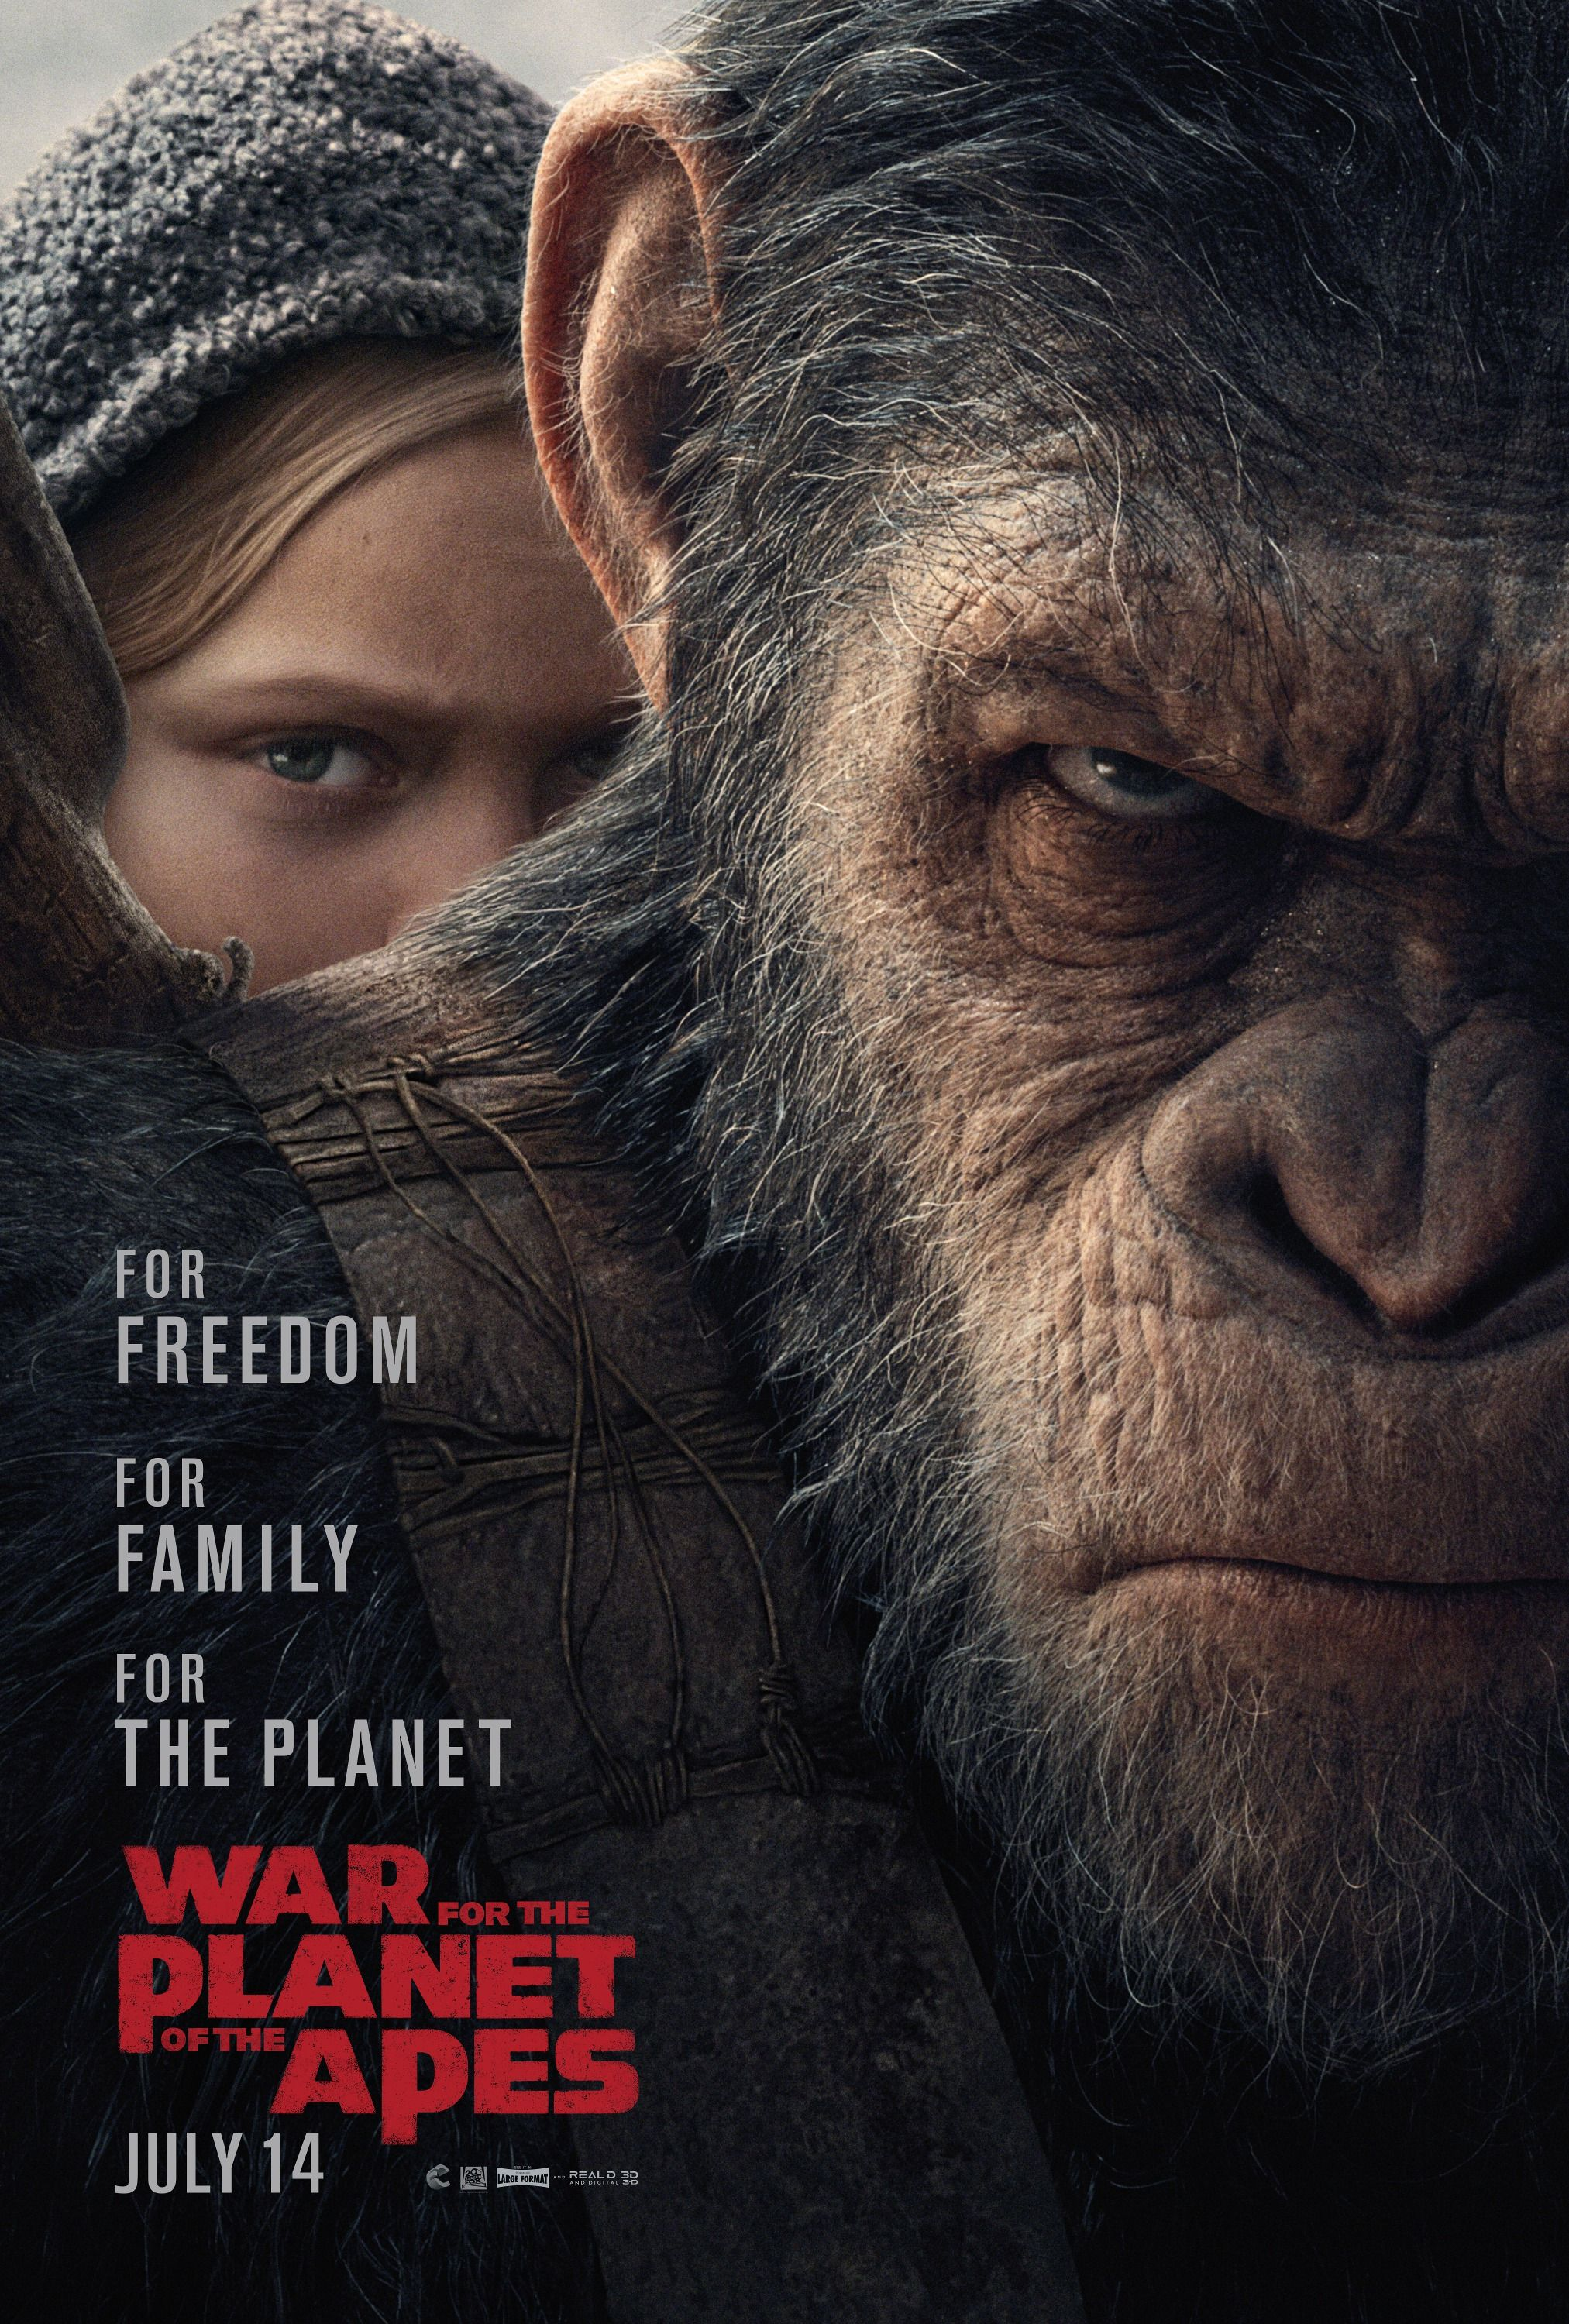 War For The Planet Of The Apes 2017 2025 X 3000 Planet Of The Apes Full Movies Online Free Free Movies Online